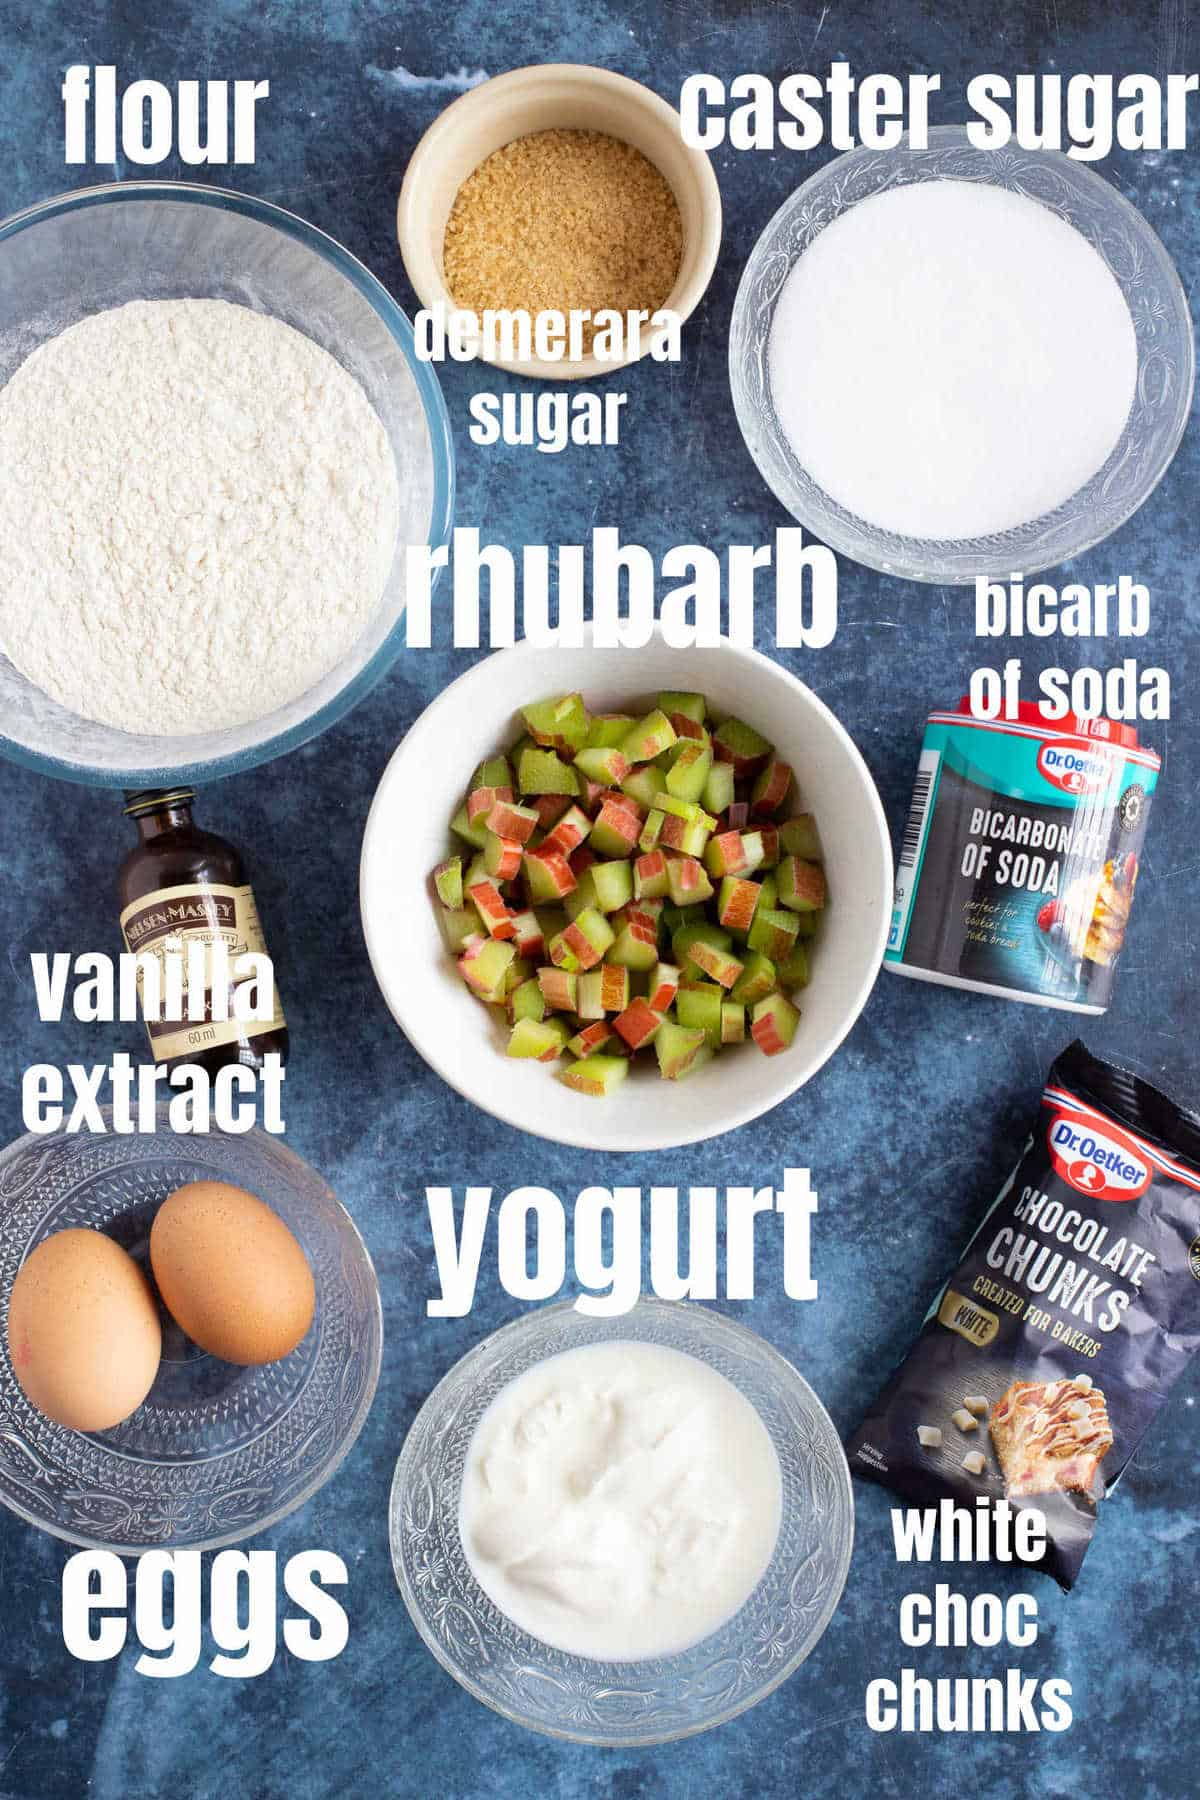 Ingredients for rhubarb muffins.